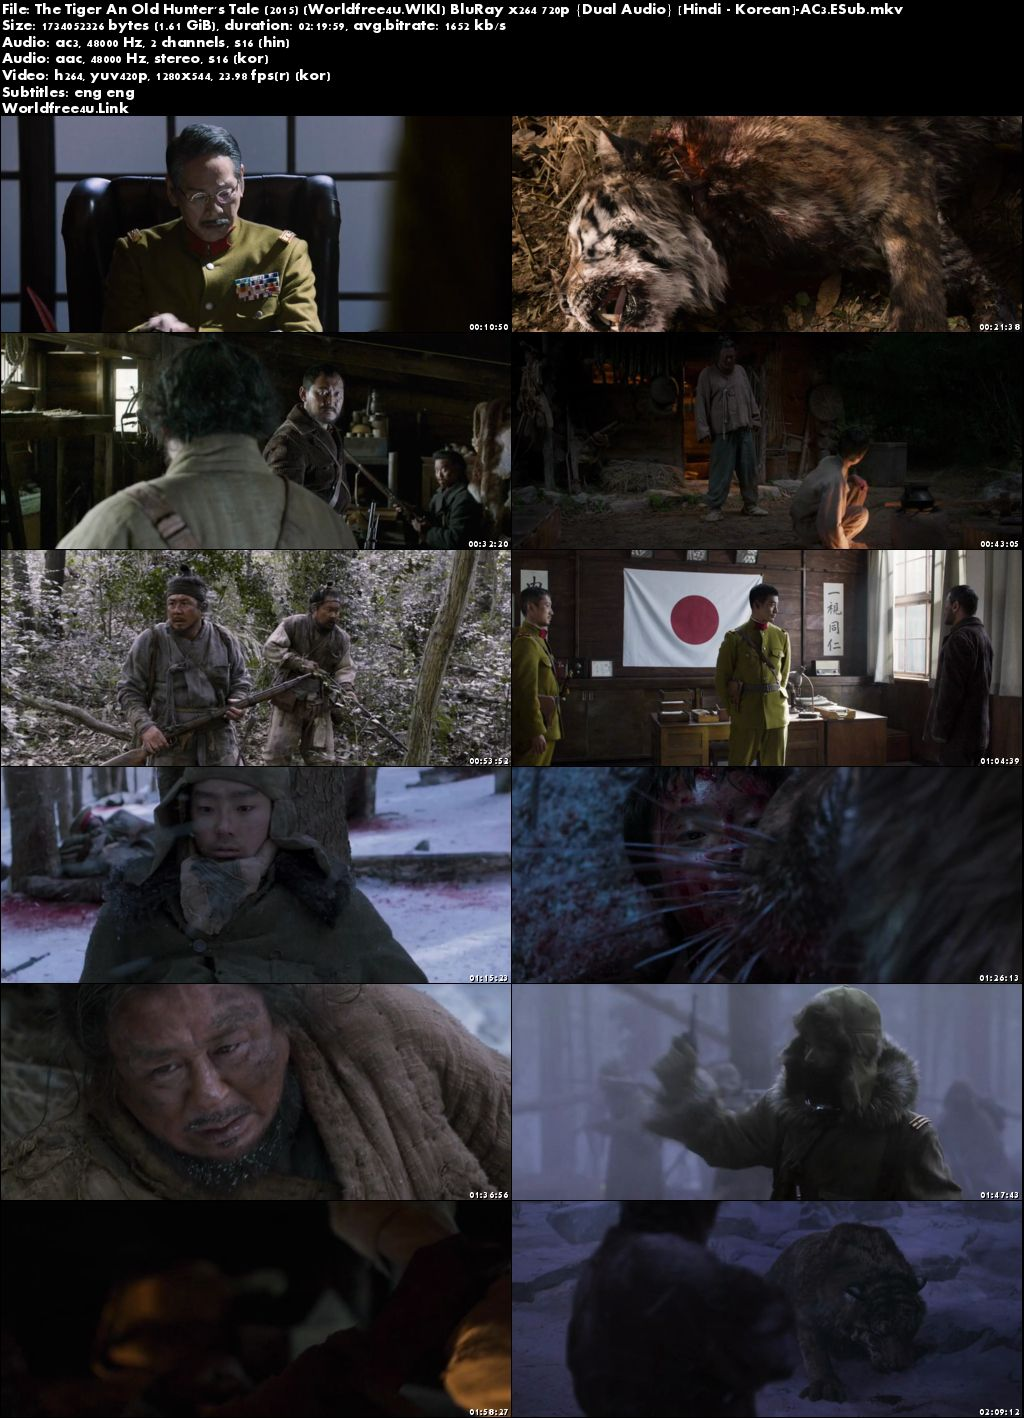 Screen shoot of The Tiger An Old Hunter's Tale 2015 BRRip 720p Dual Audio Hindi English, Hindi Dubbed Movie Download Watch Online in Hd